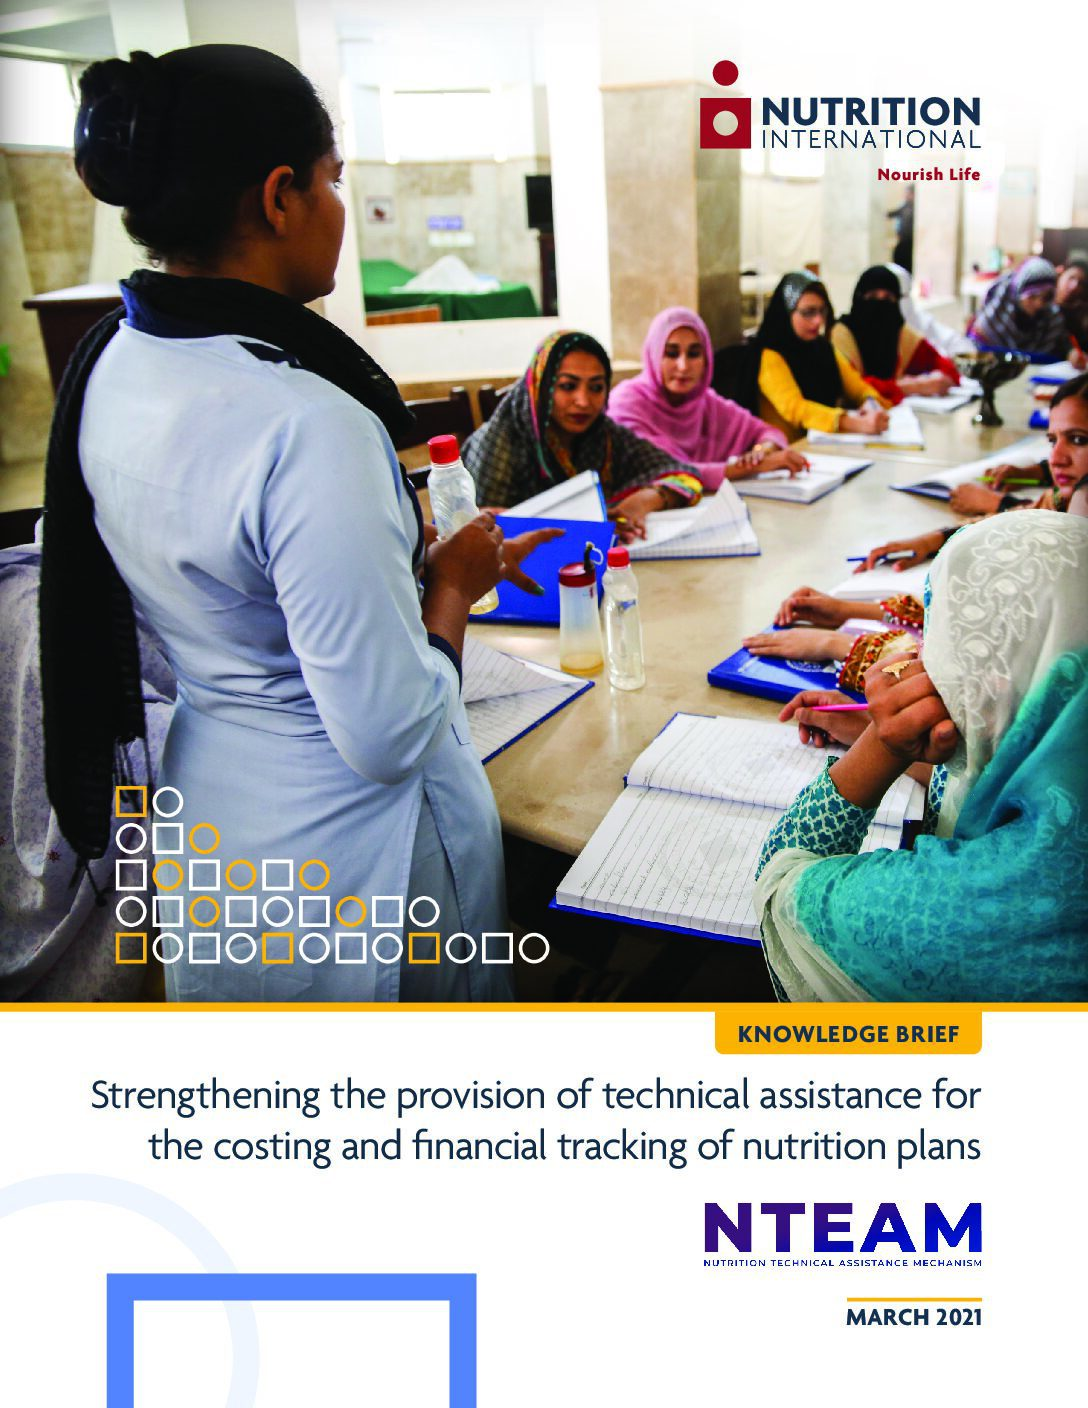 Strengthening the provision of technical assistance for the costing and financial tracking of nutrition plans thumbnail